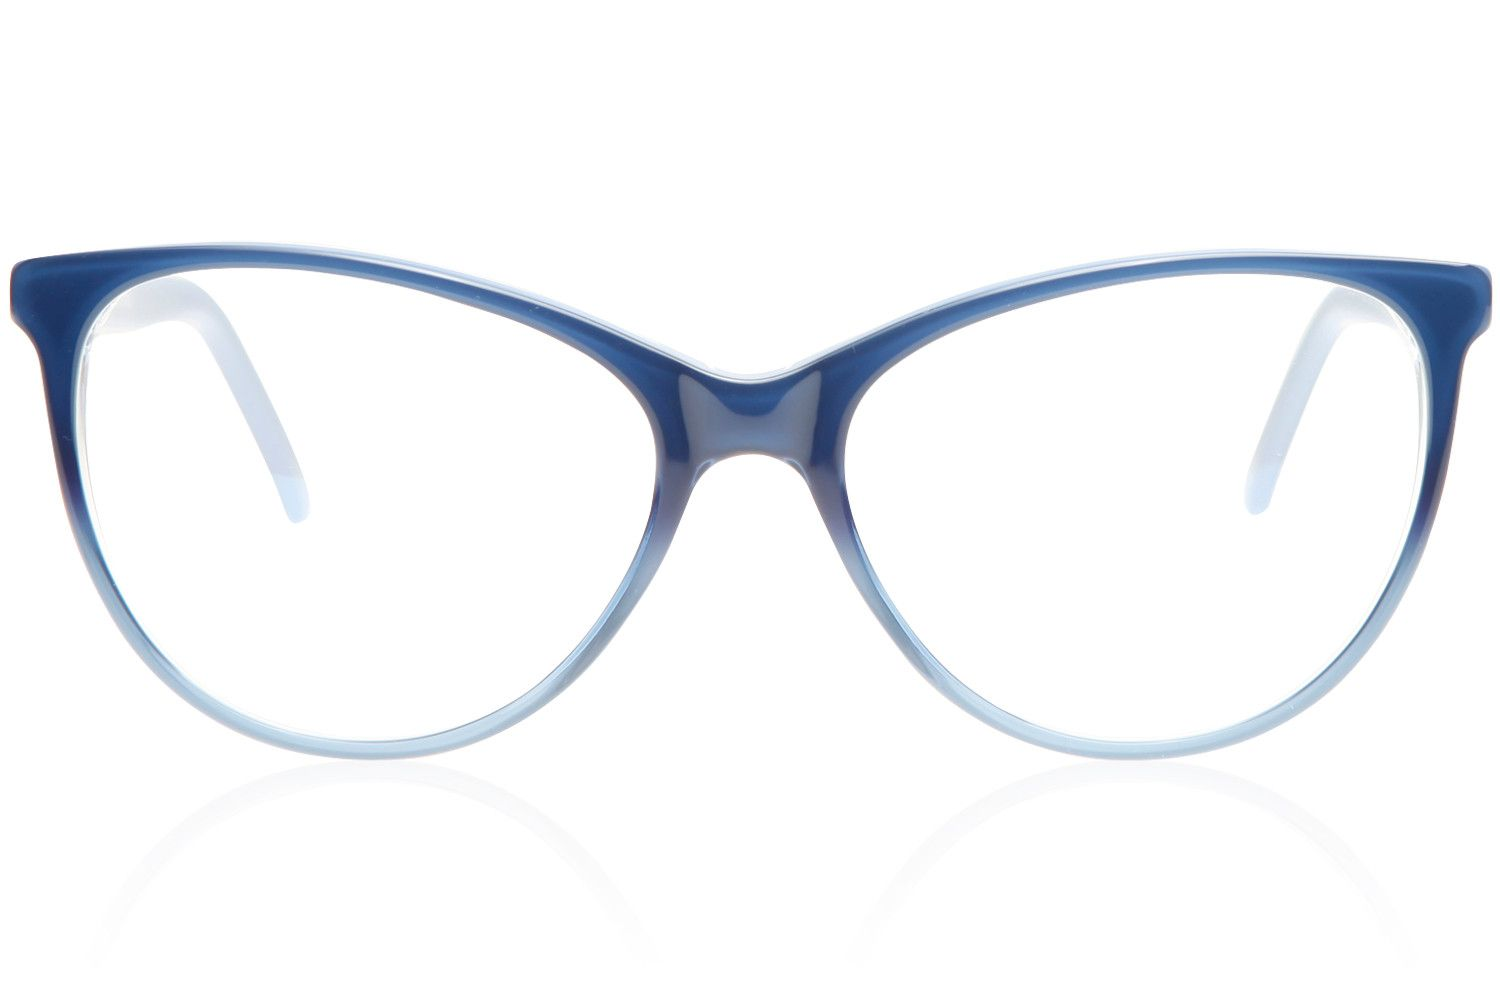 Andy Wolf Eyewear 5023 | Glasses | Pinterest | Brille